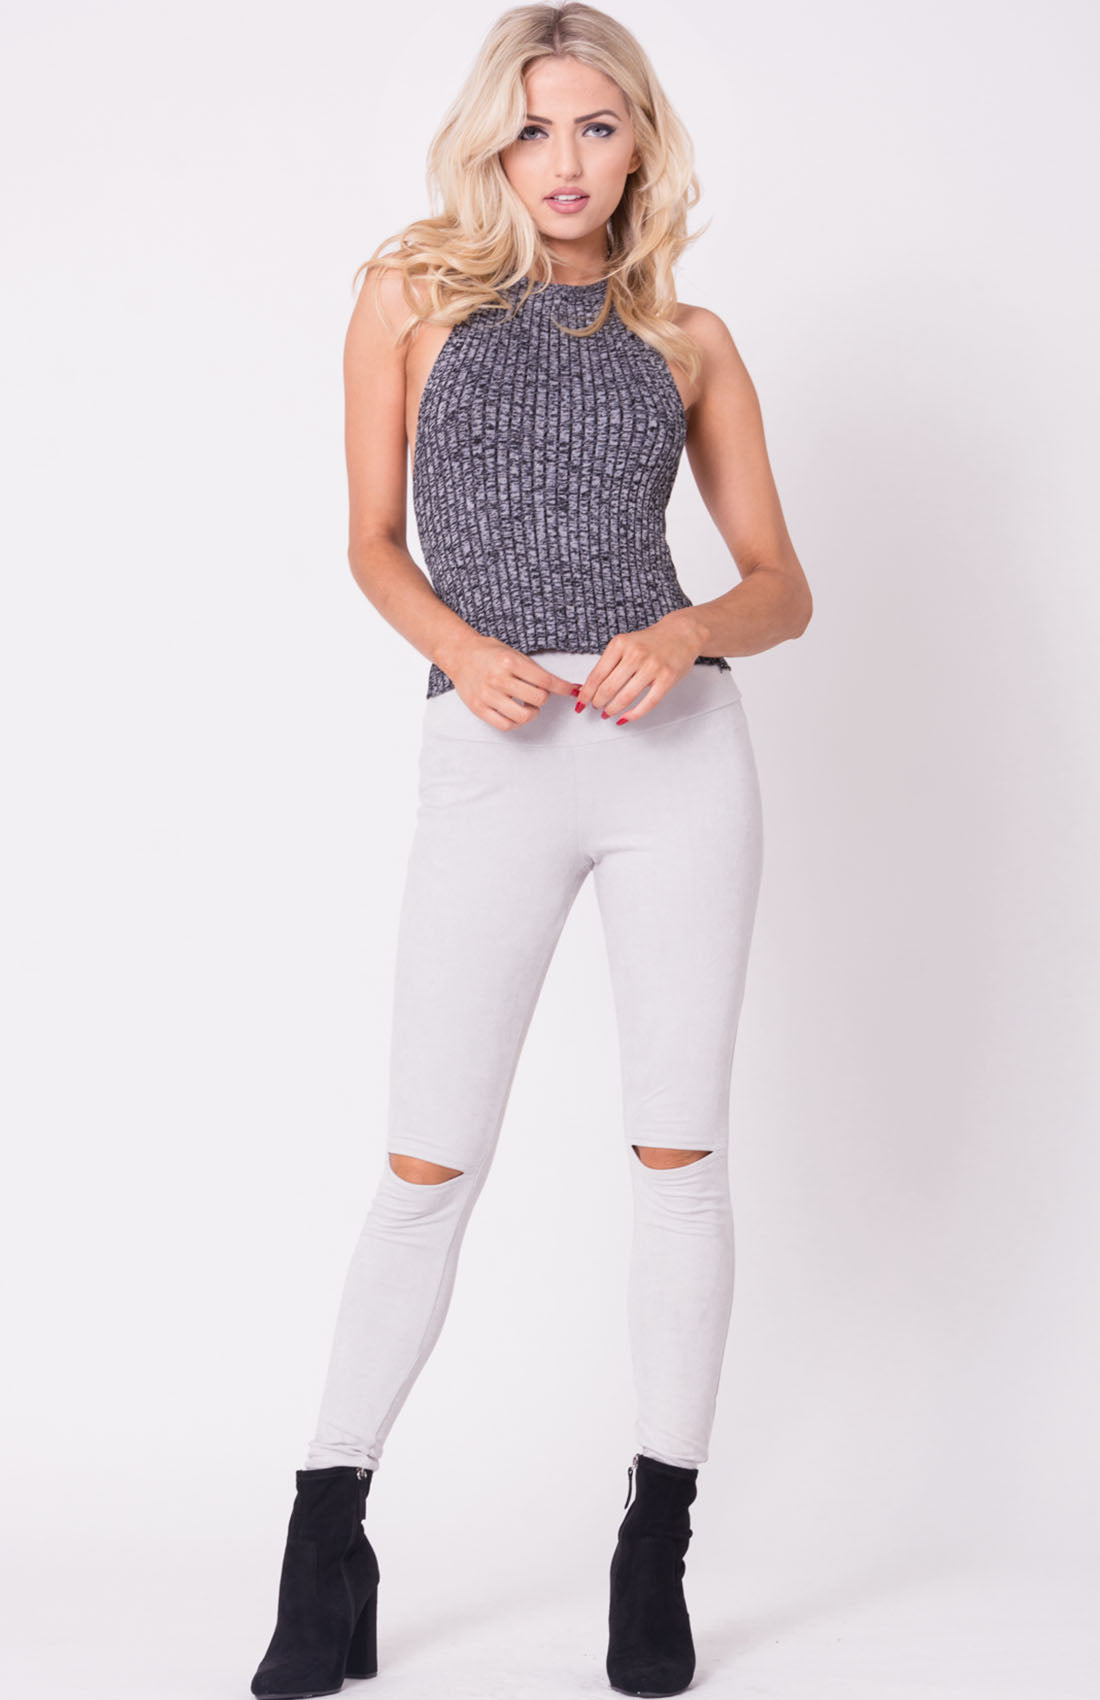 TWO TONE KNIT CROP TOP